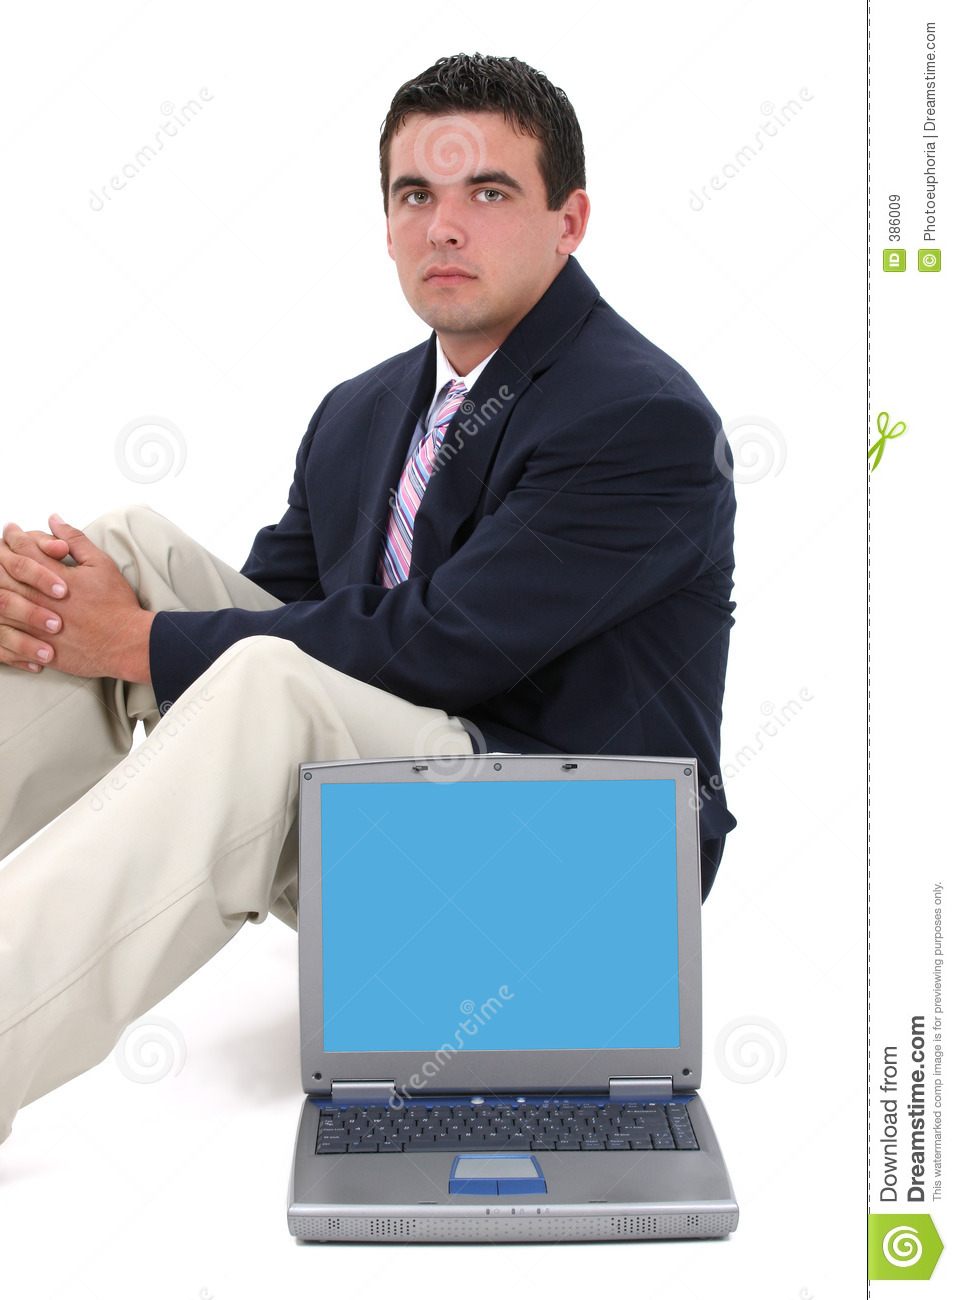 Attractive behind business man sitting young